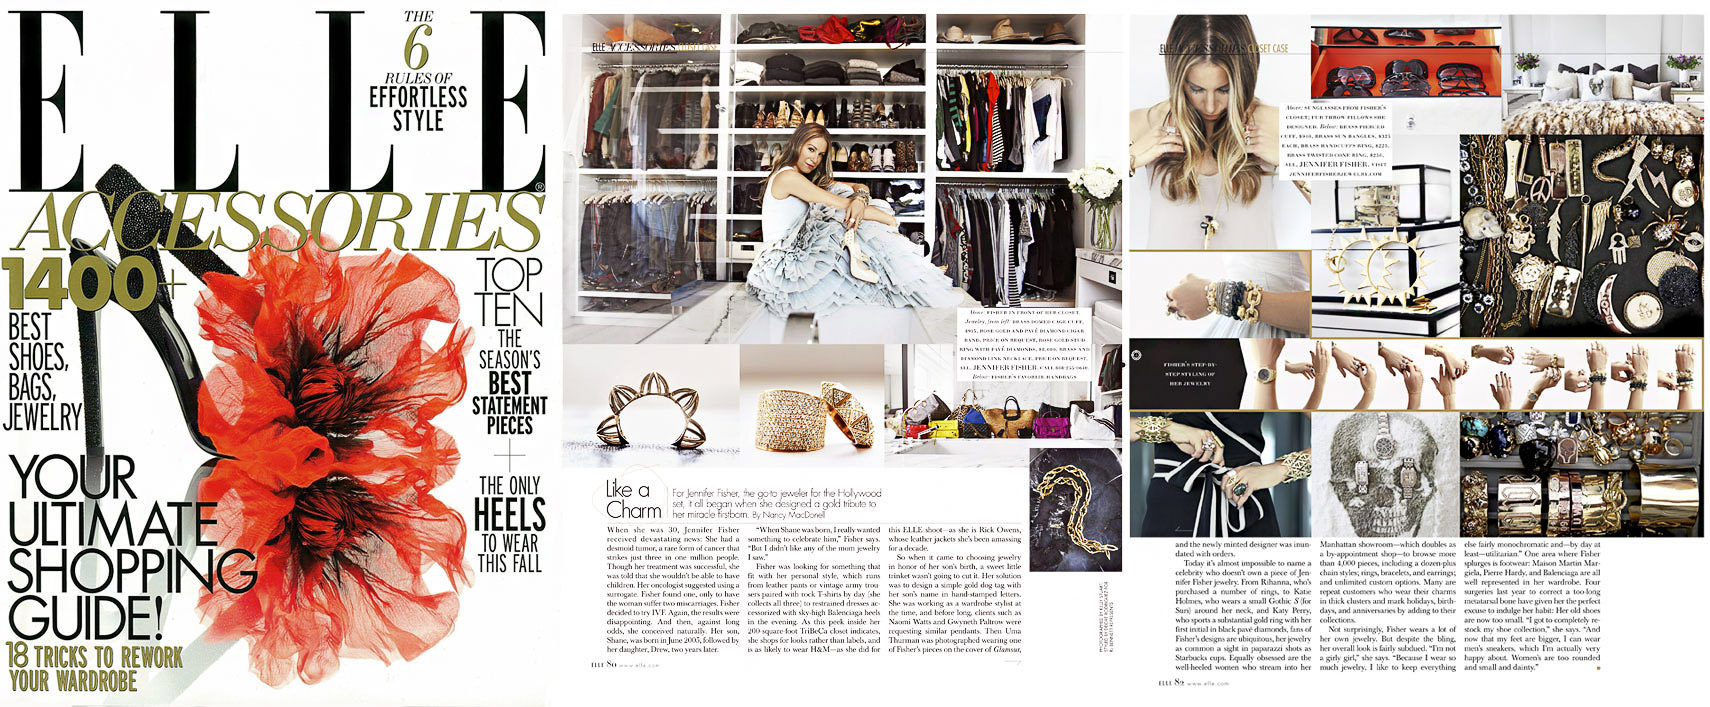 00-Elle-Magazine-Accessories